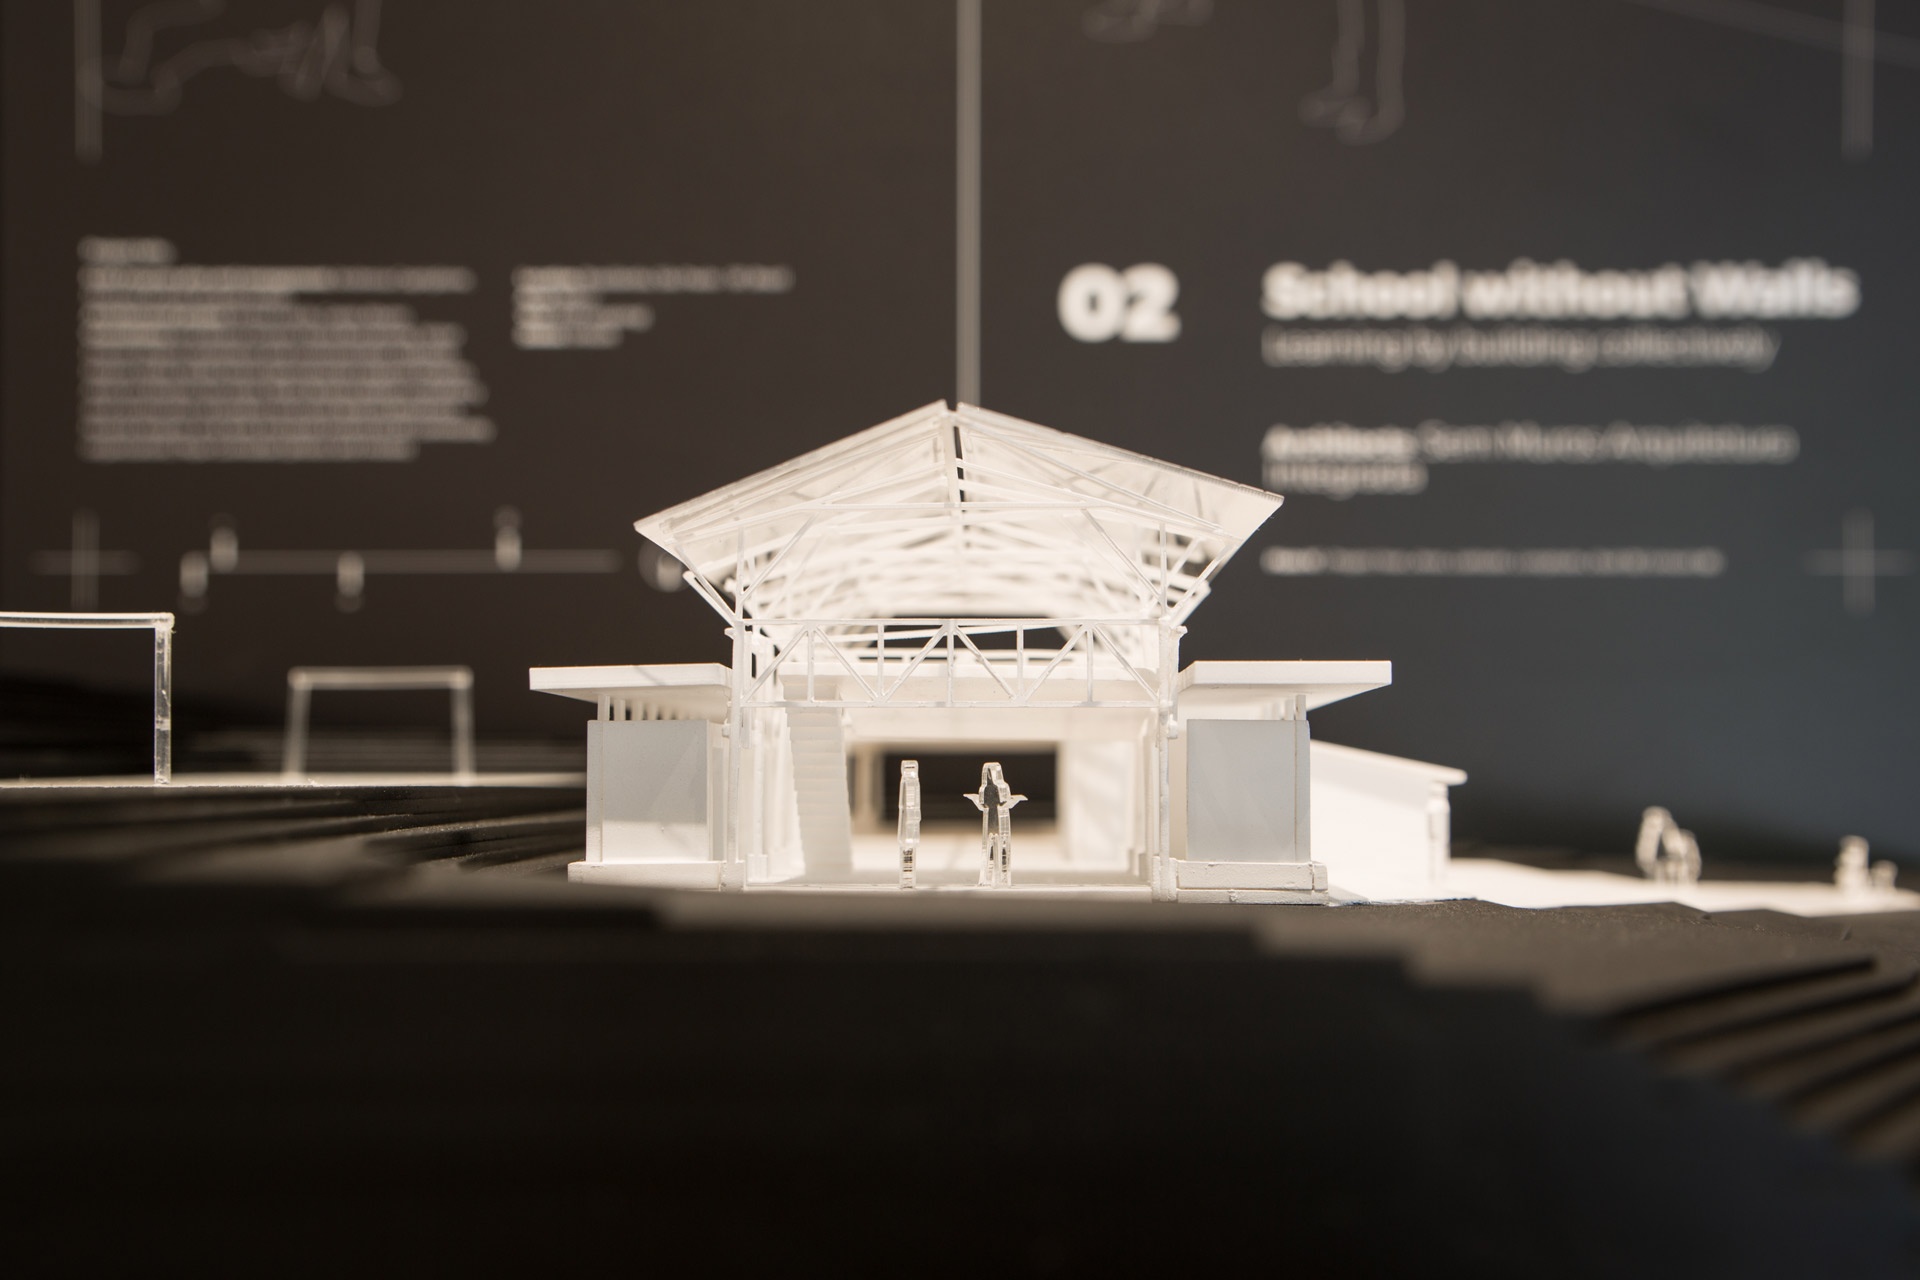 .16 International Architecture Exhibition - Brazil Pavilion